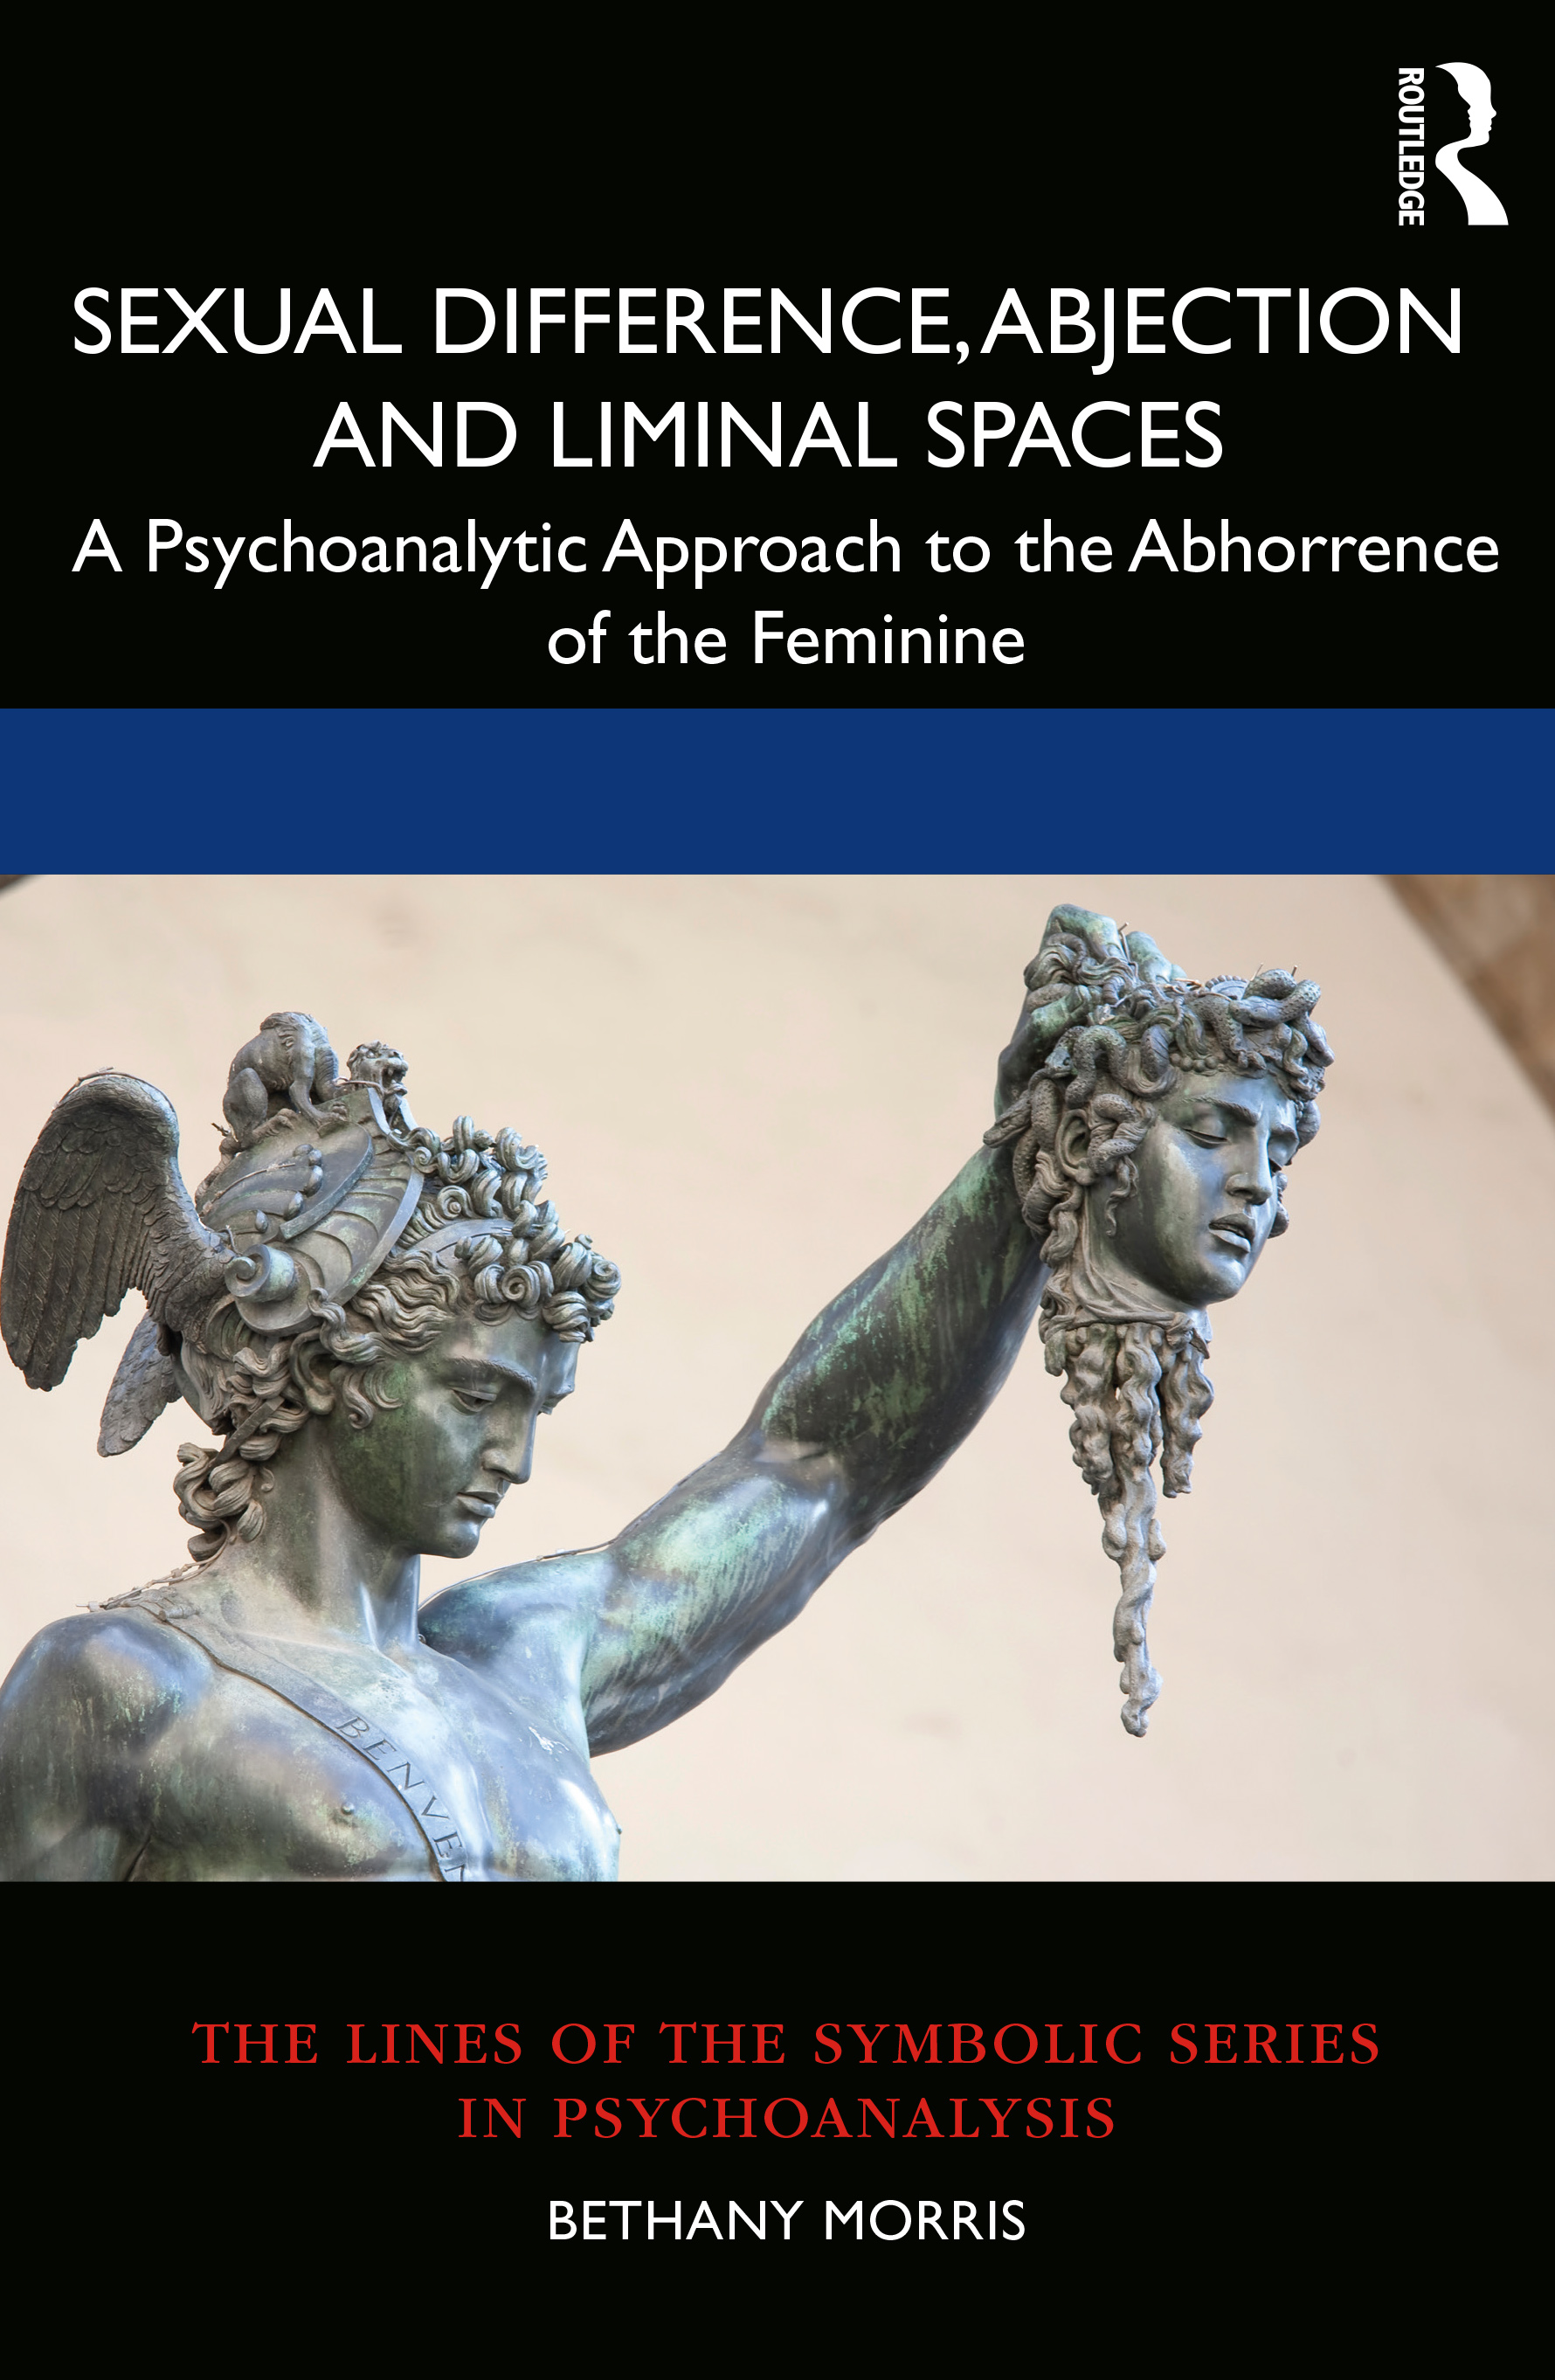 Sexual Difference, Abjection and Liminal Spaces: A Psychoanalytic Approach to the Abhorrence of the Feminine book cover